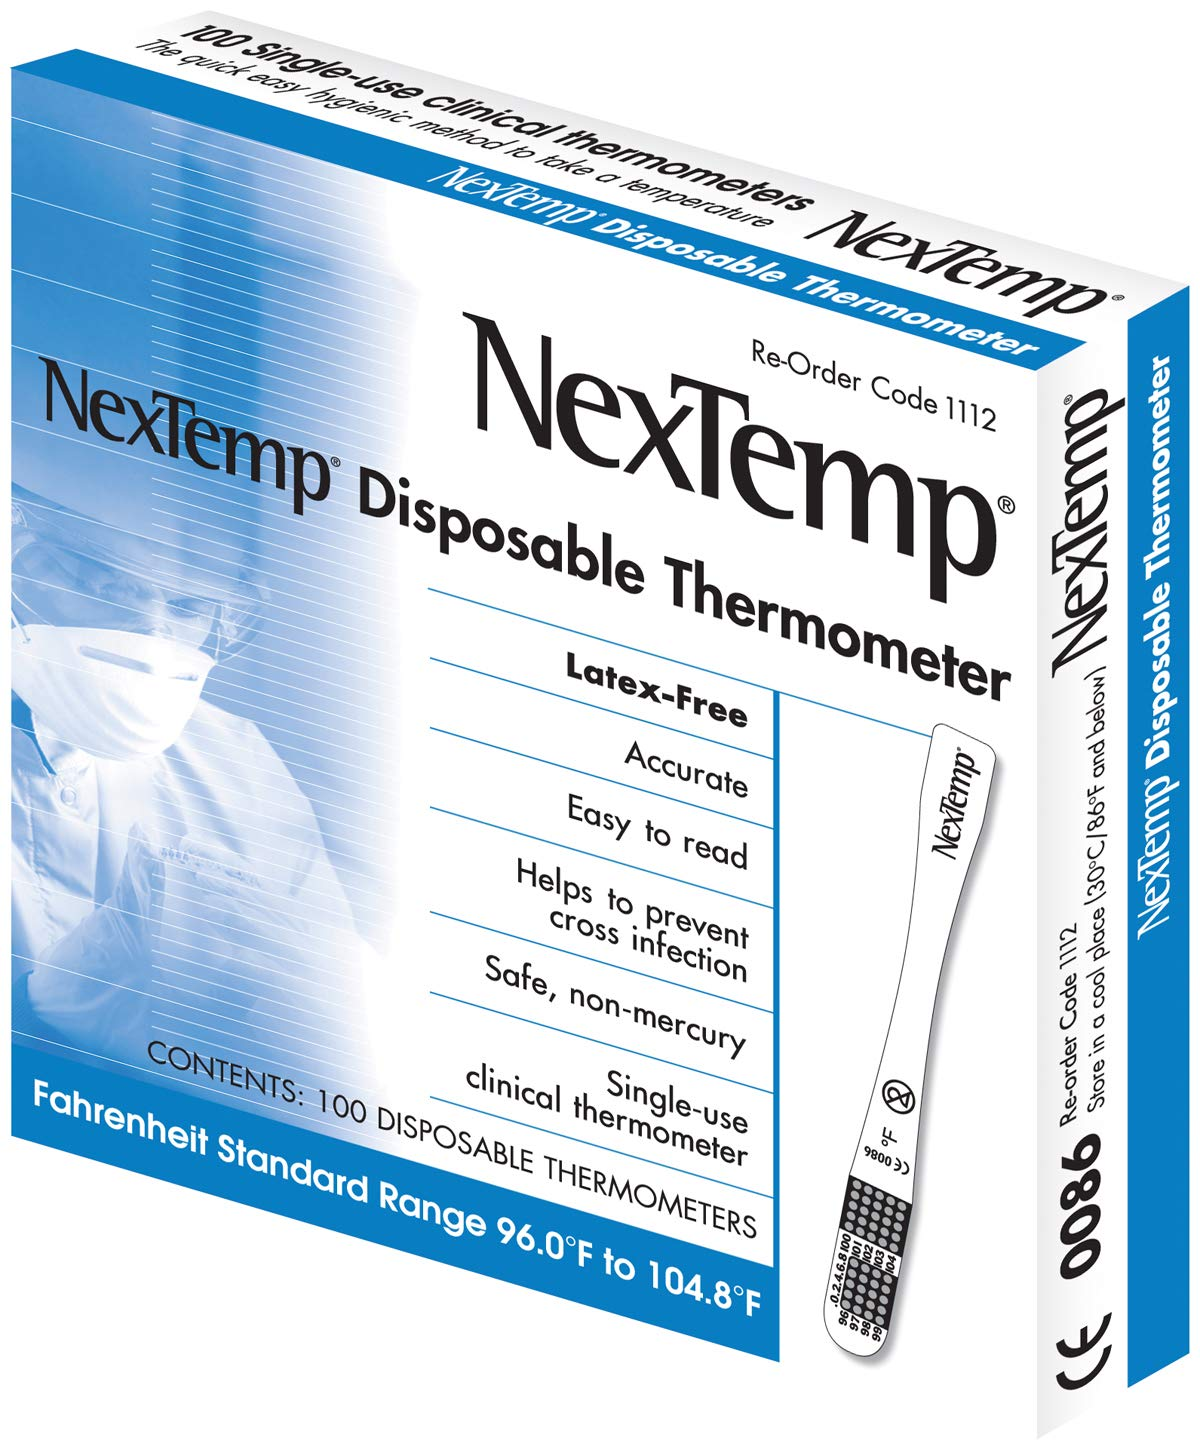 Medical Indicators Nextemp Single Use Oral/Axillary Farenheit Thermometers, Mli111220, 1 Pound